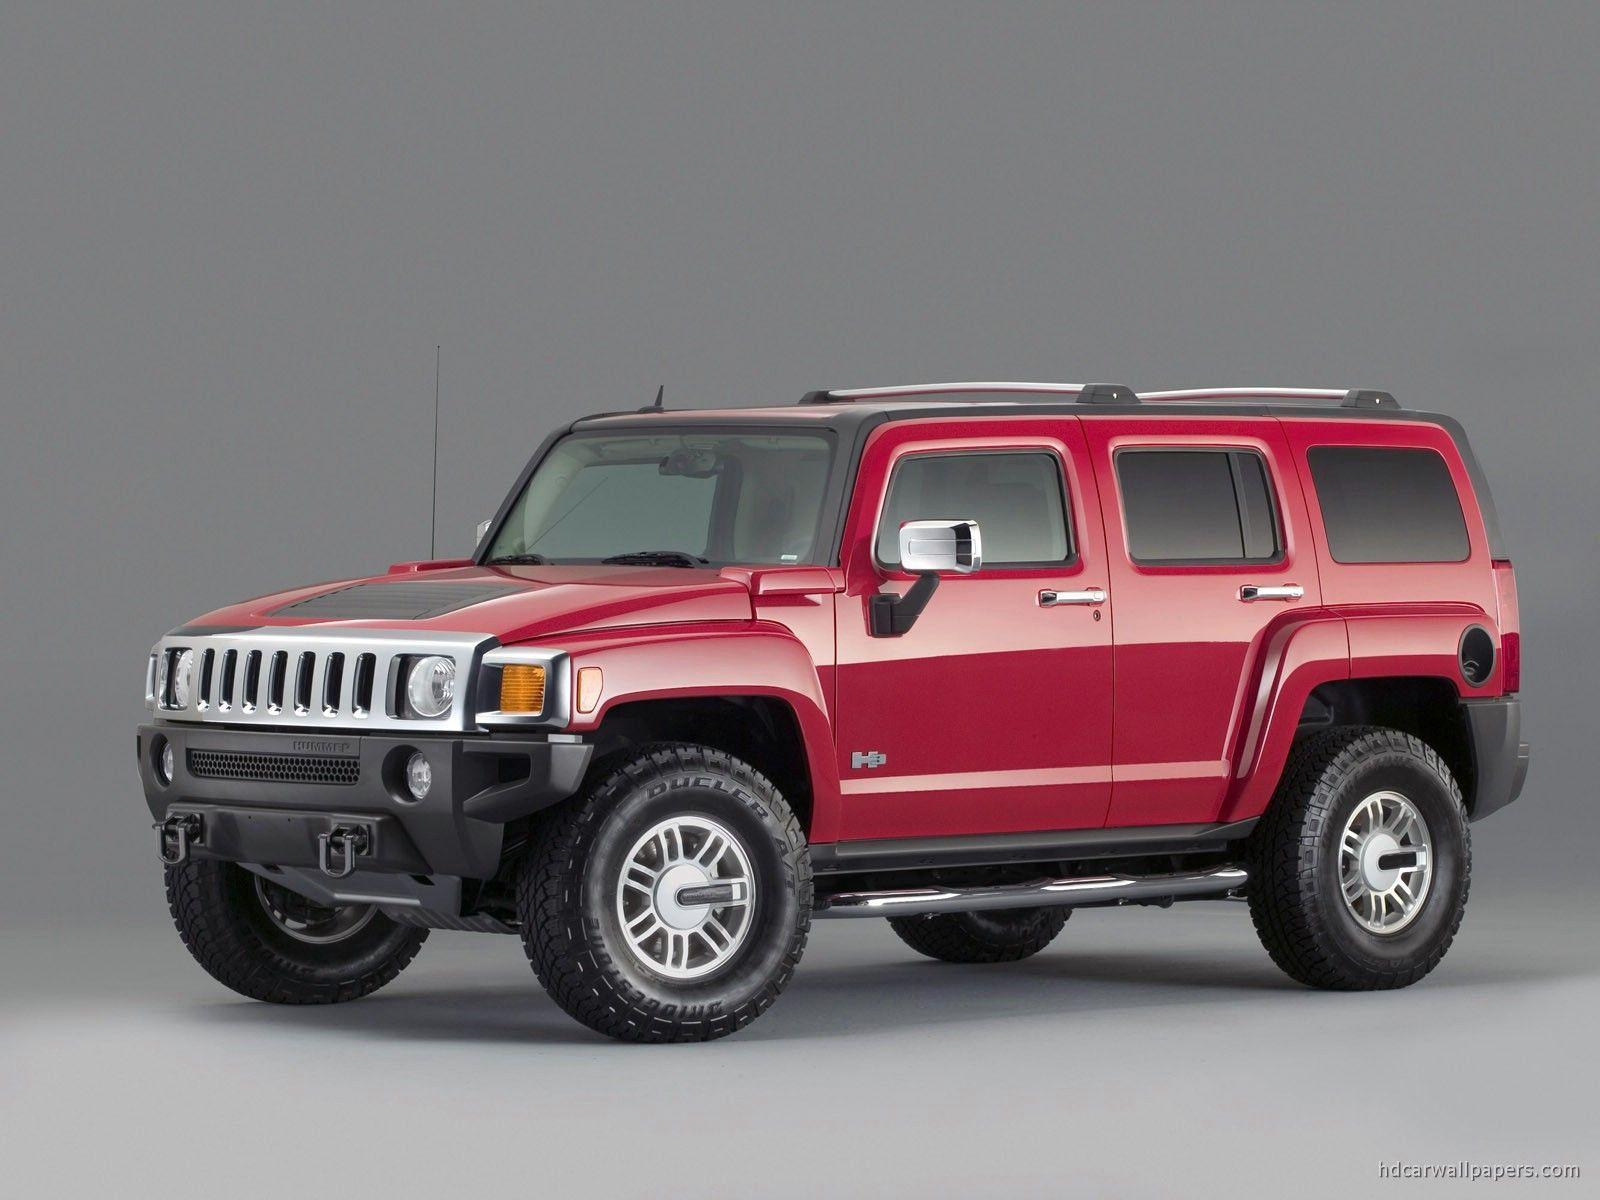 Hummer H3 Wallpapers Wallpaper Cave